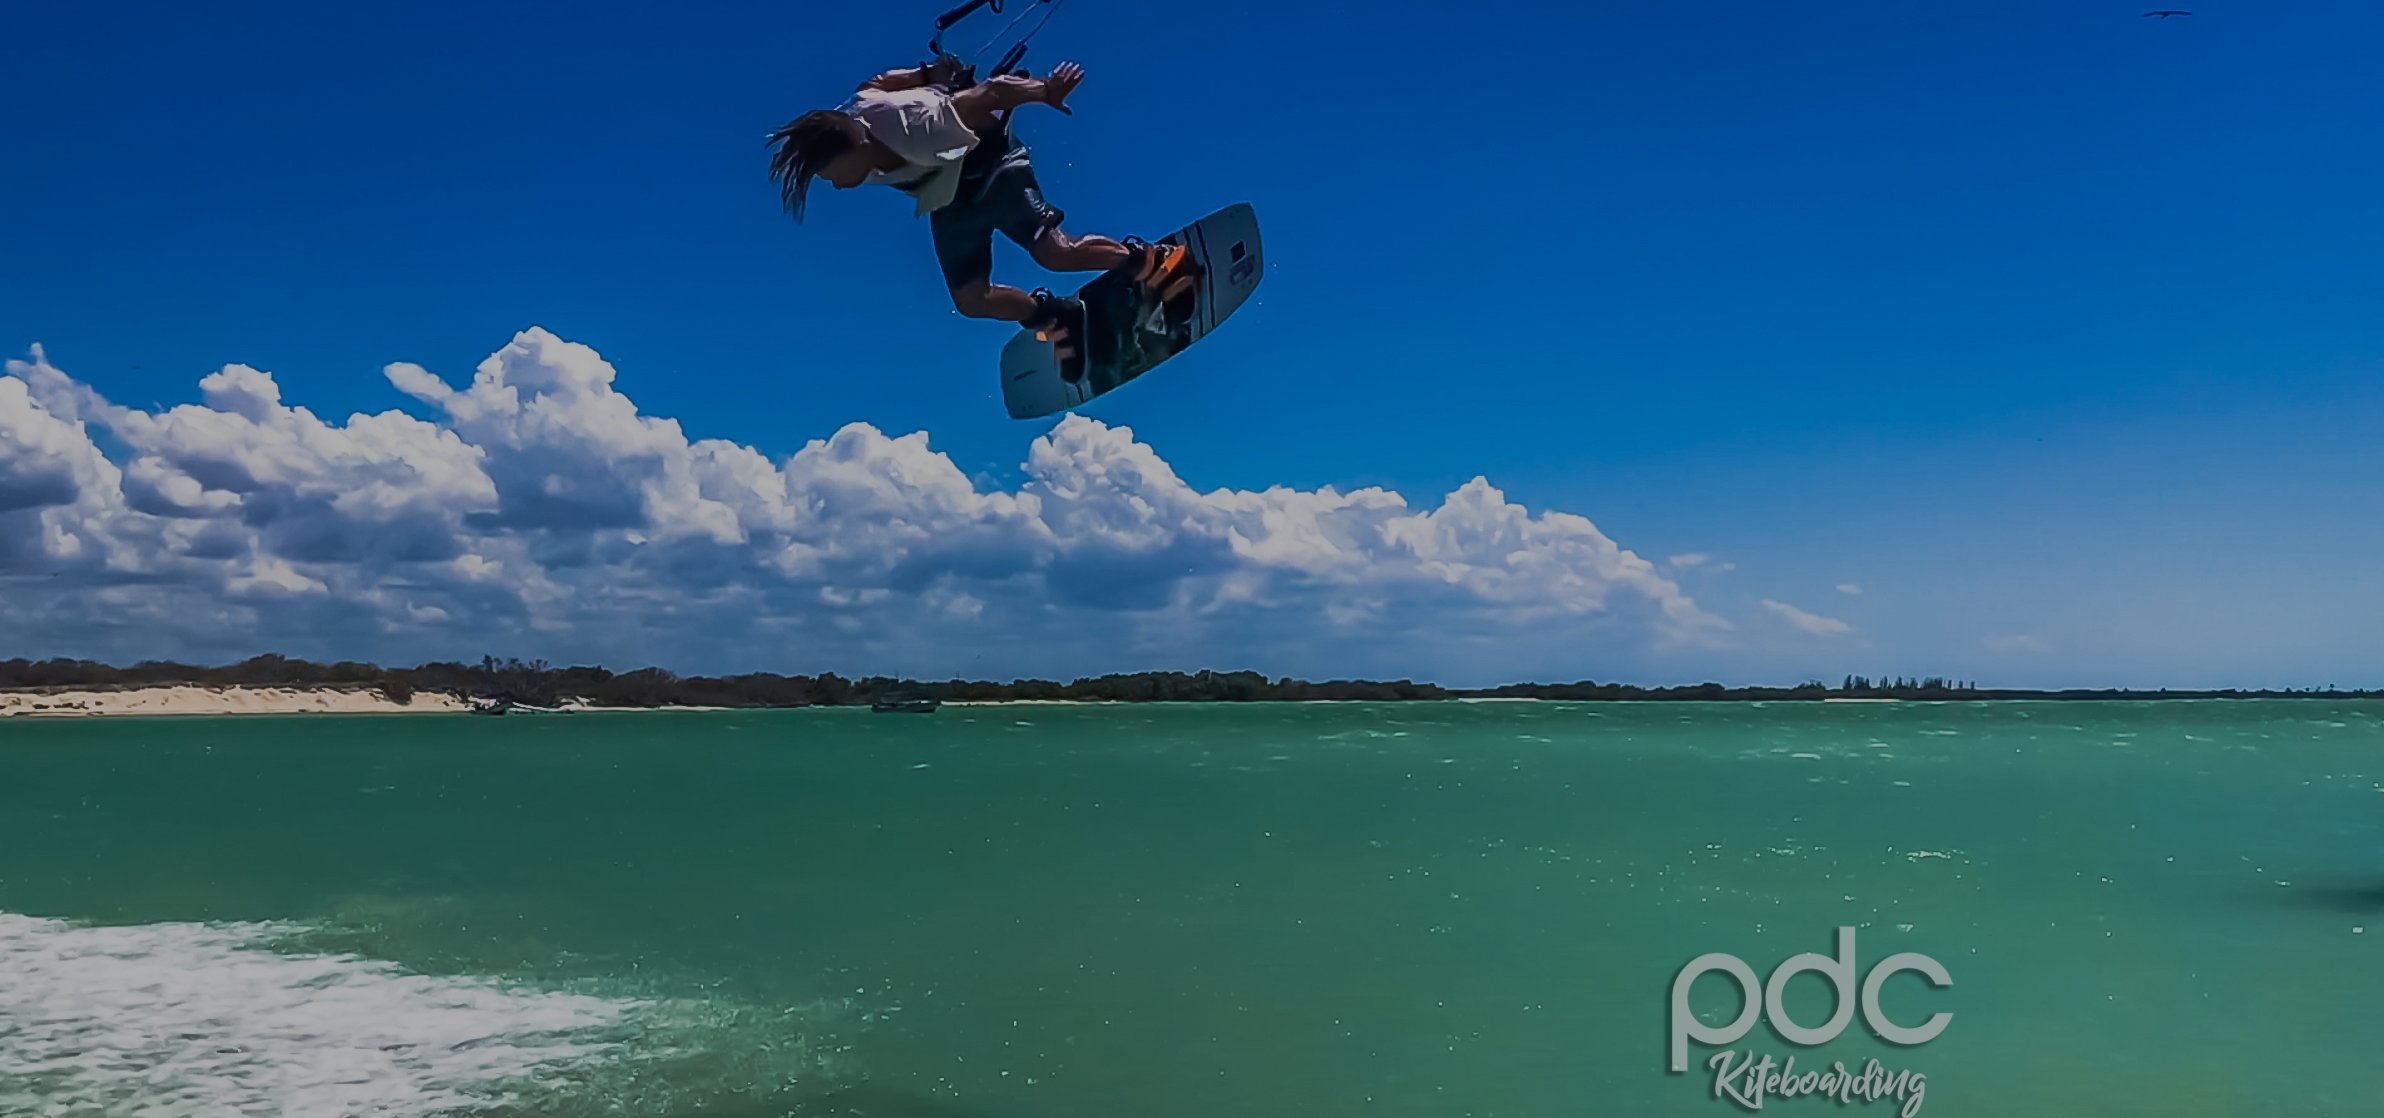 Mexico kiteboarding, windsurfing, kitesurfing, beach kites, kitesurfing equipment, kite sailing, kiteboard Riviera Maya, Cancun, Playa del Carmen, Wake boarding lessons